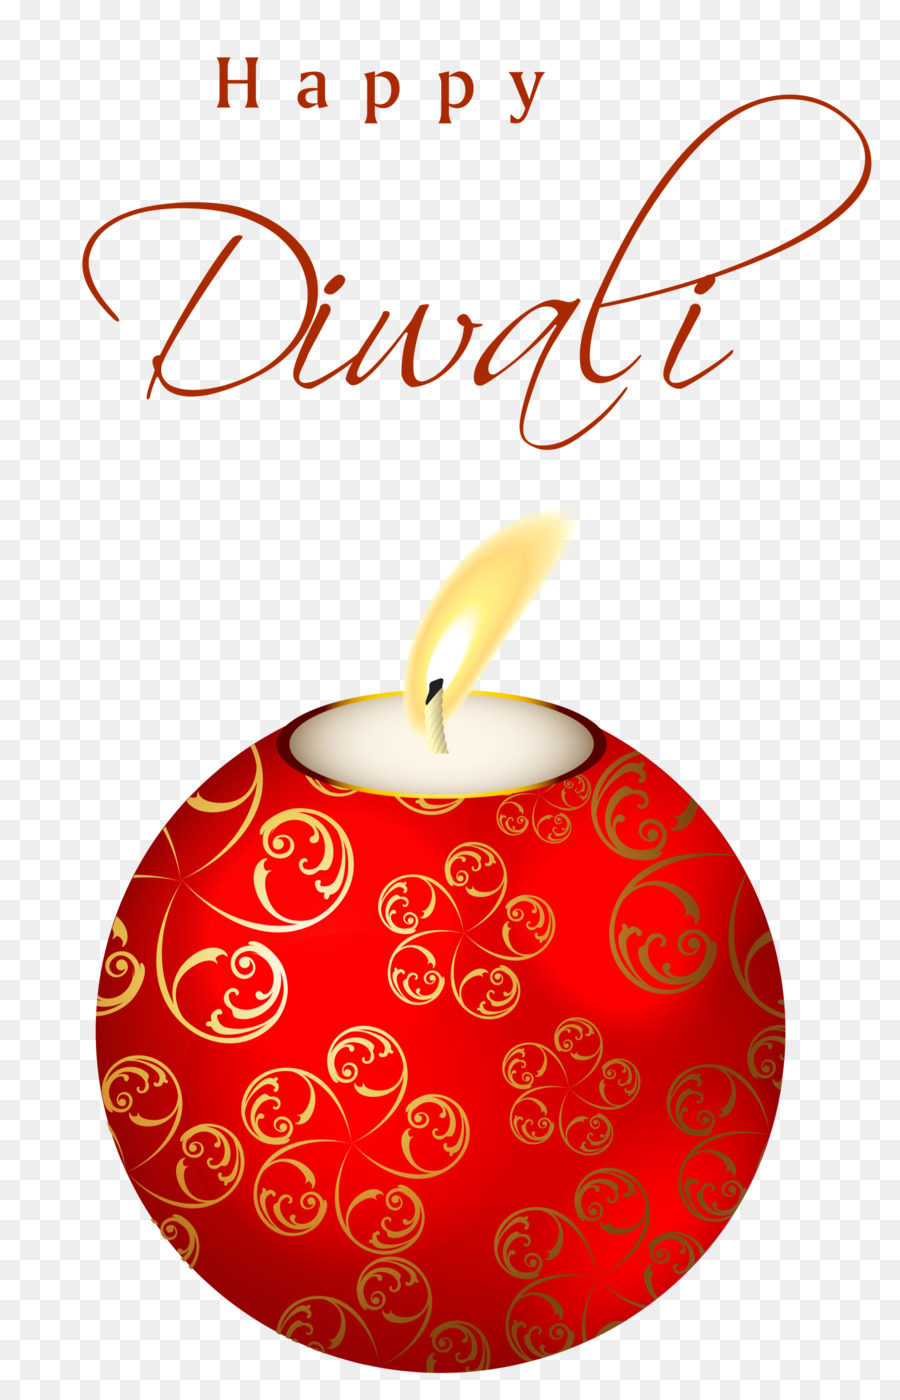 Diwali sticker clipart clipart black and white Christmas And New Year Background png download - 2325*3608 - Free ... clipart black and white